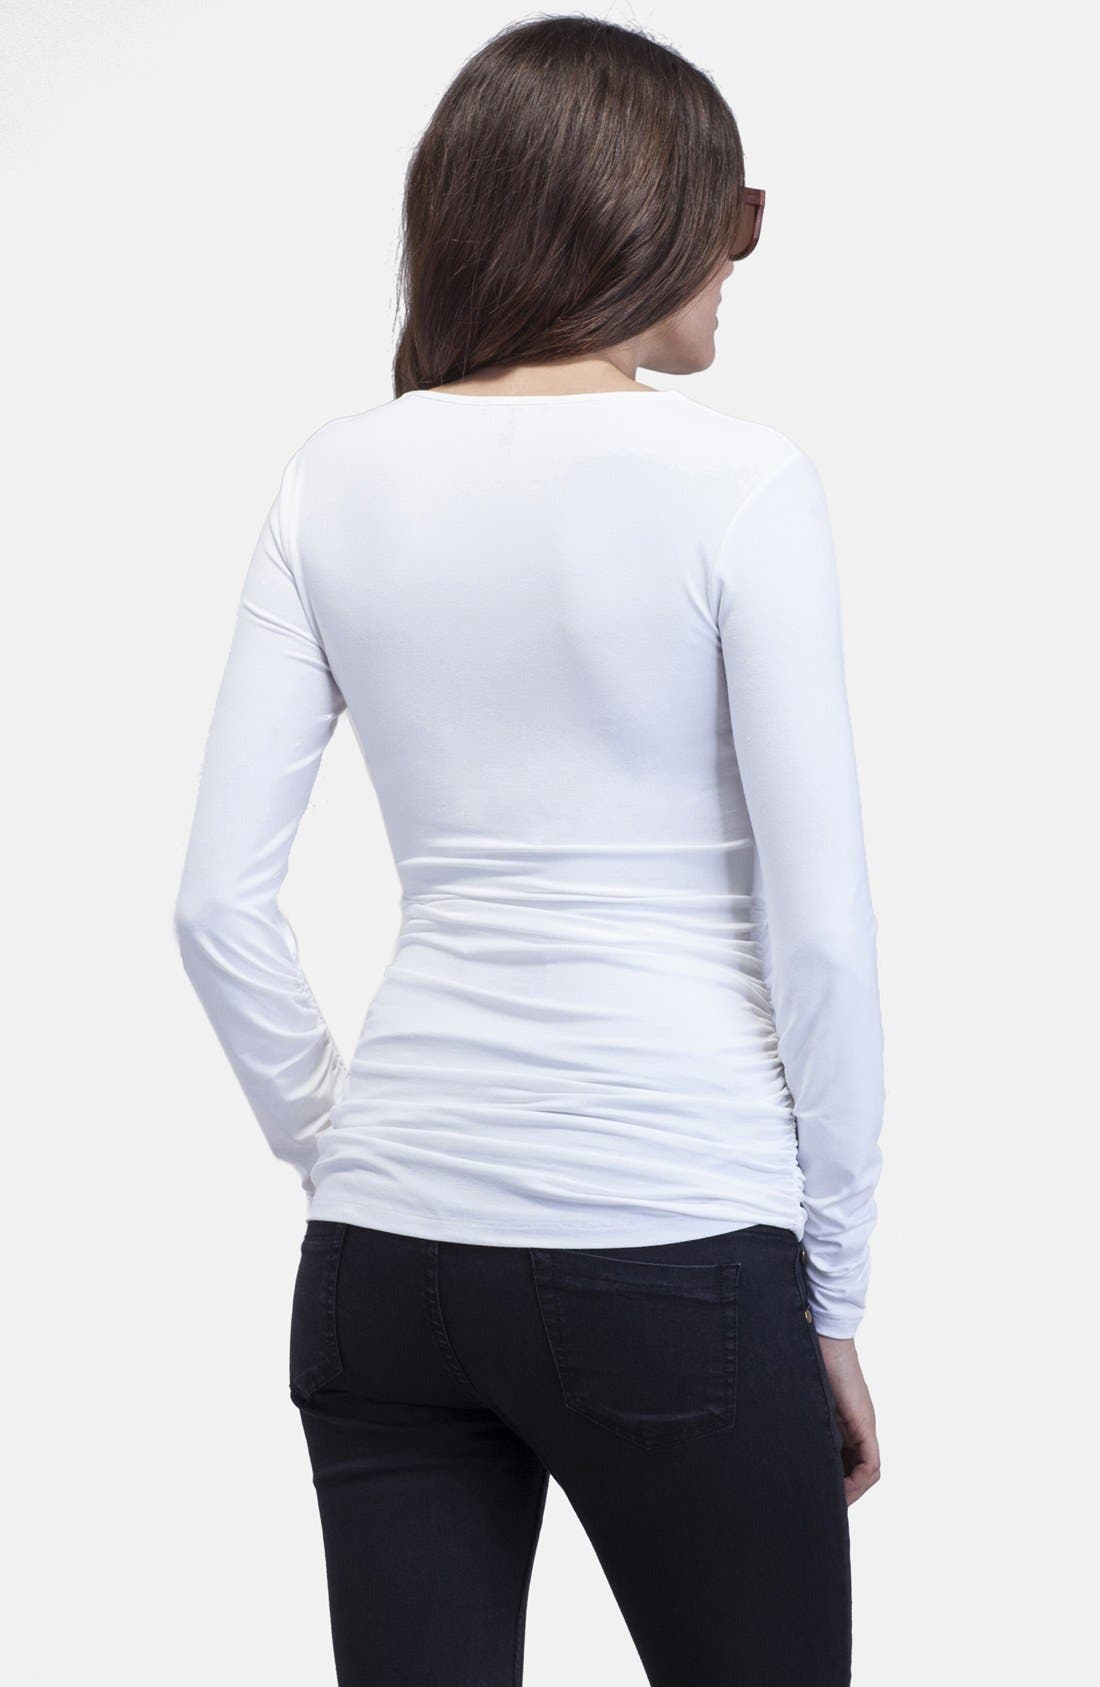 'The Scoop' Maternity Top,                             Alternate thumbnail 2, color,                             Pure White